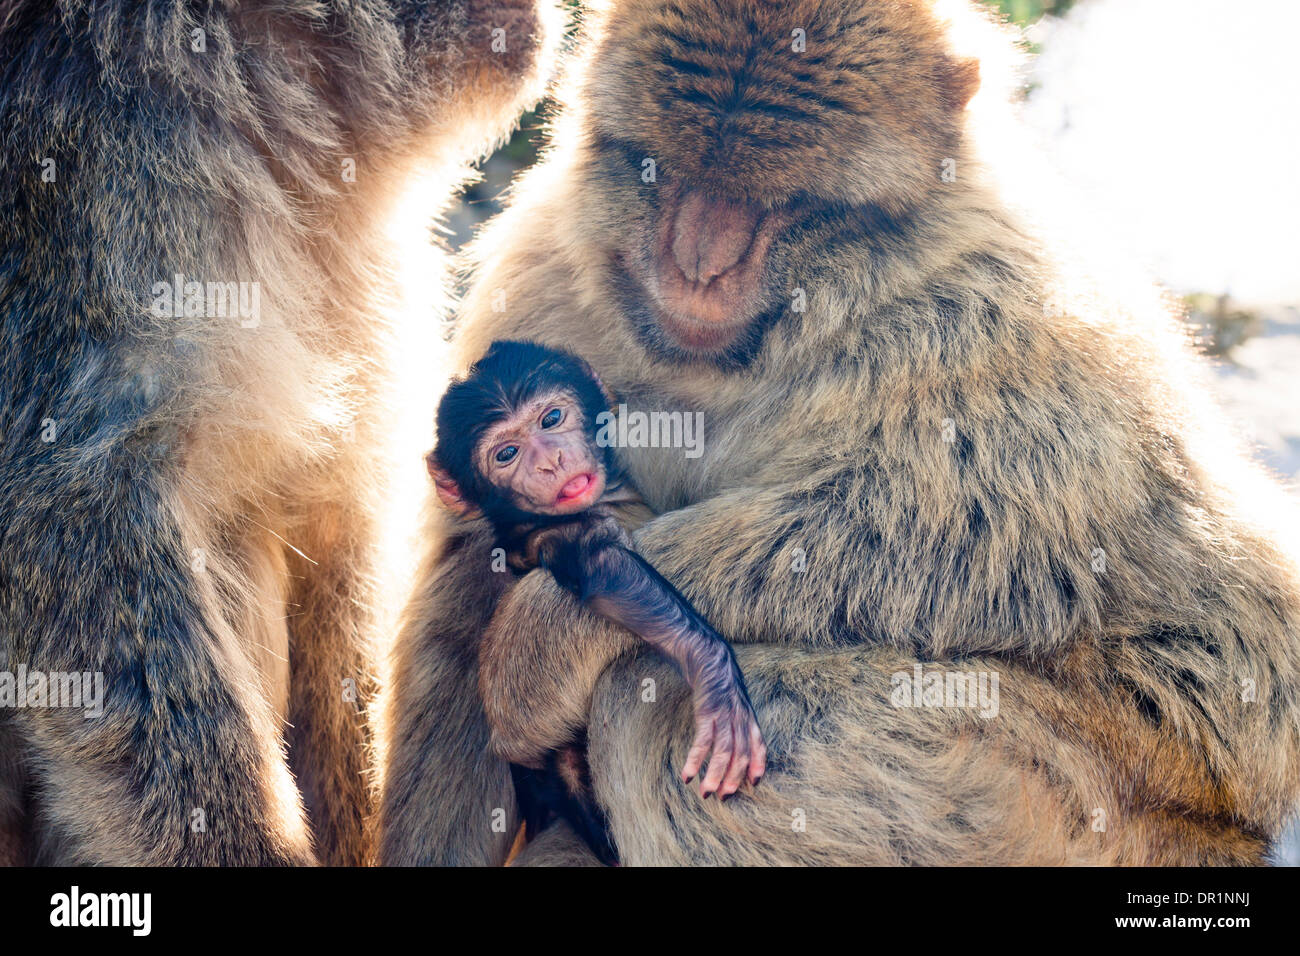 Barbary Macaques in Gibraltar. - Stock Image